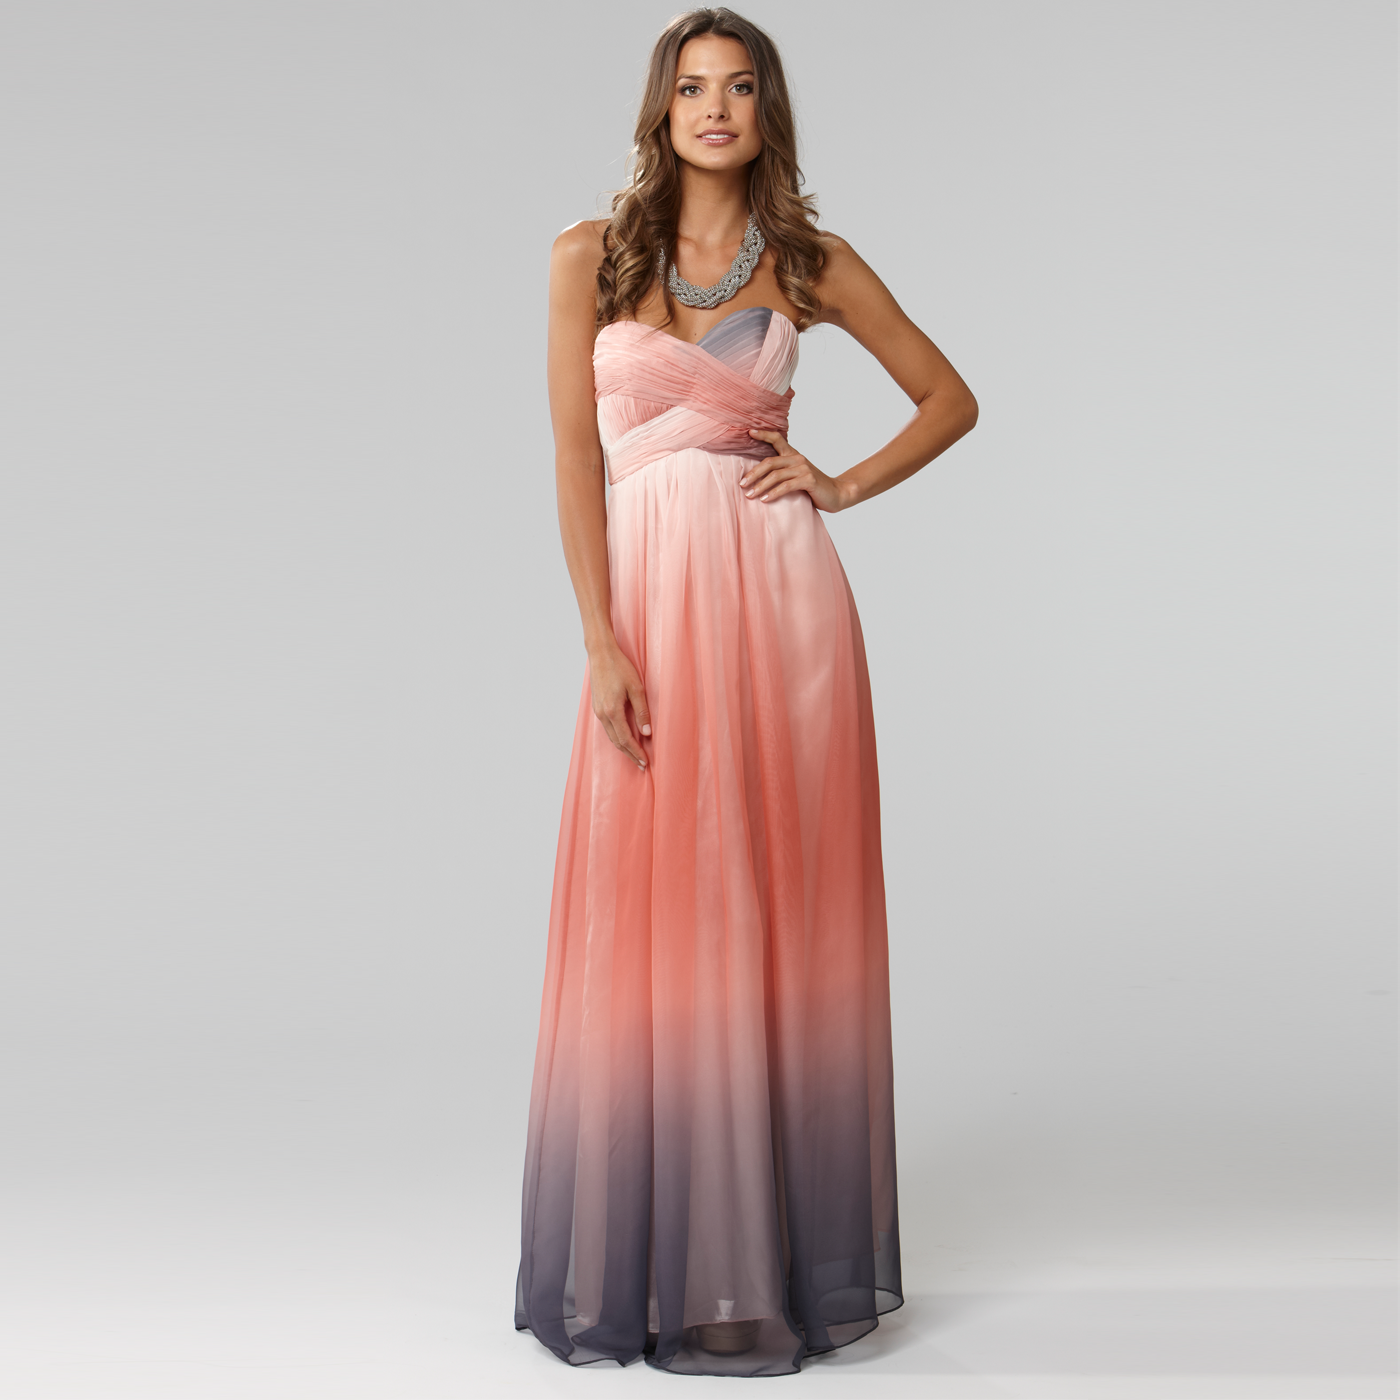 Langhem Mona Lisa Coral Ombre Evening Gown - Swish Clothing ...